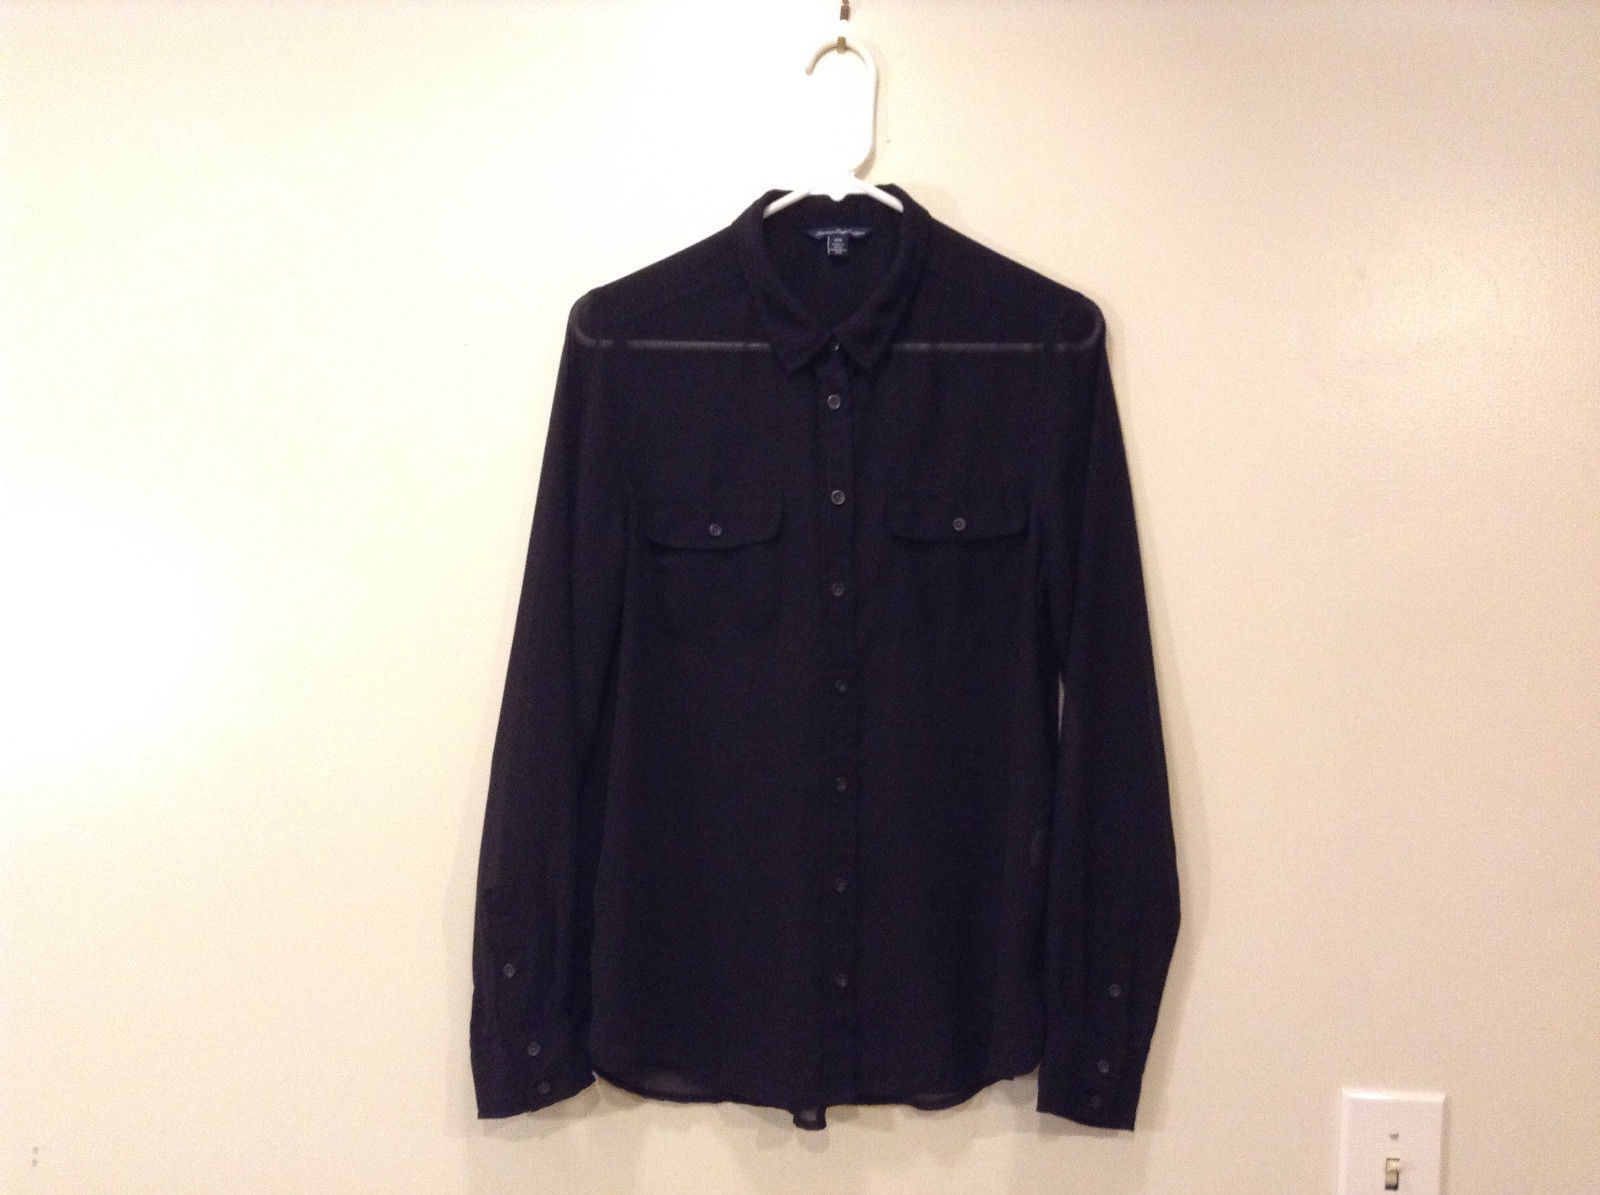 American Eagle Outfitters Ladies Size M Black Sheer Fabric Blouse Shirt